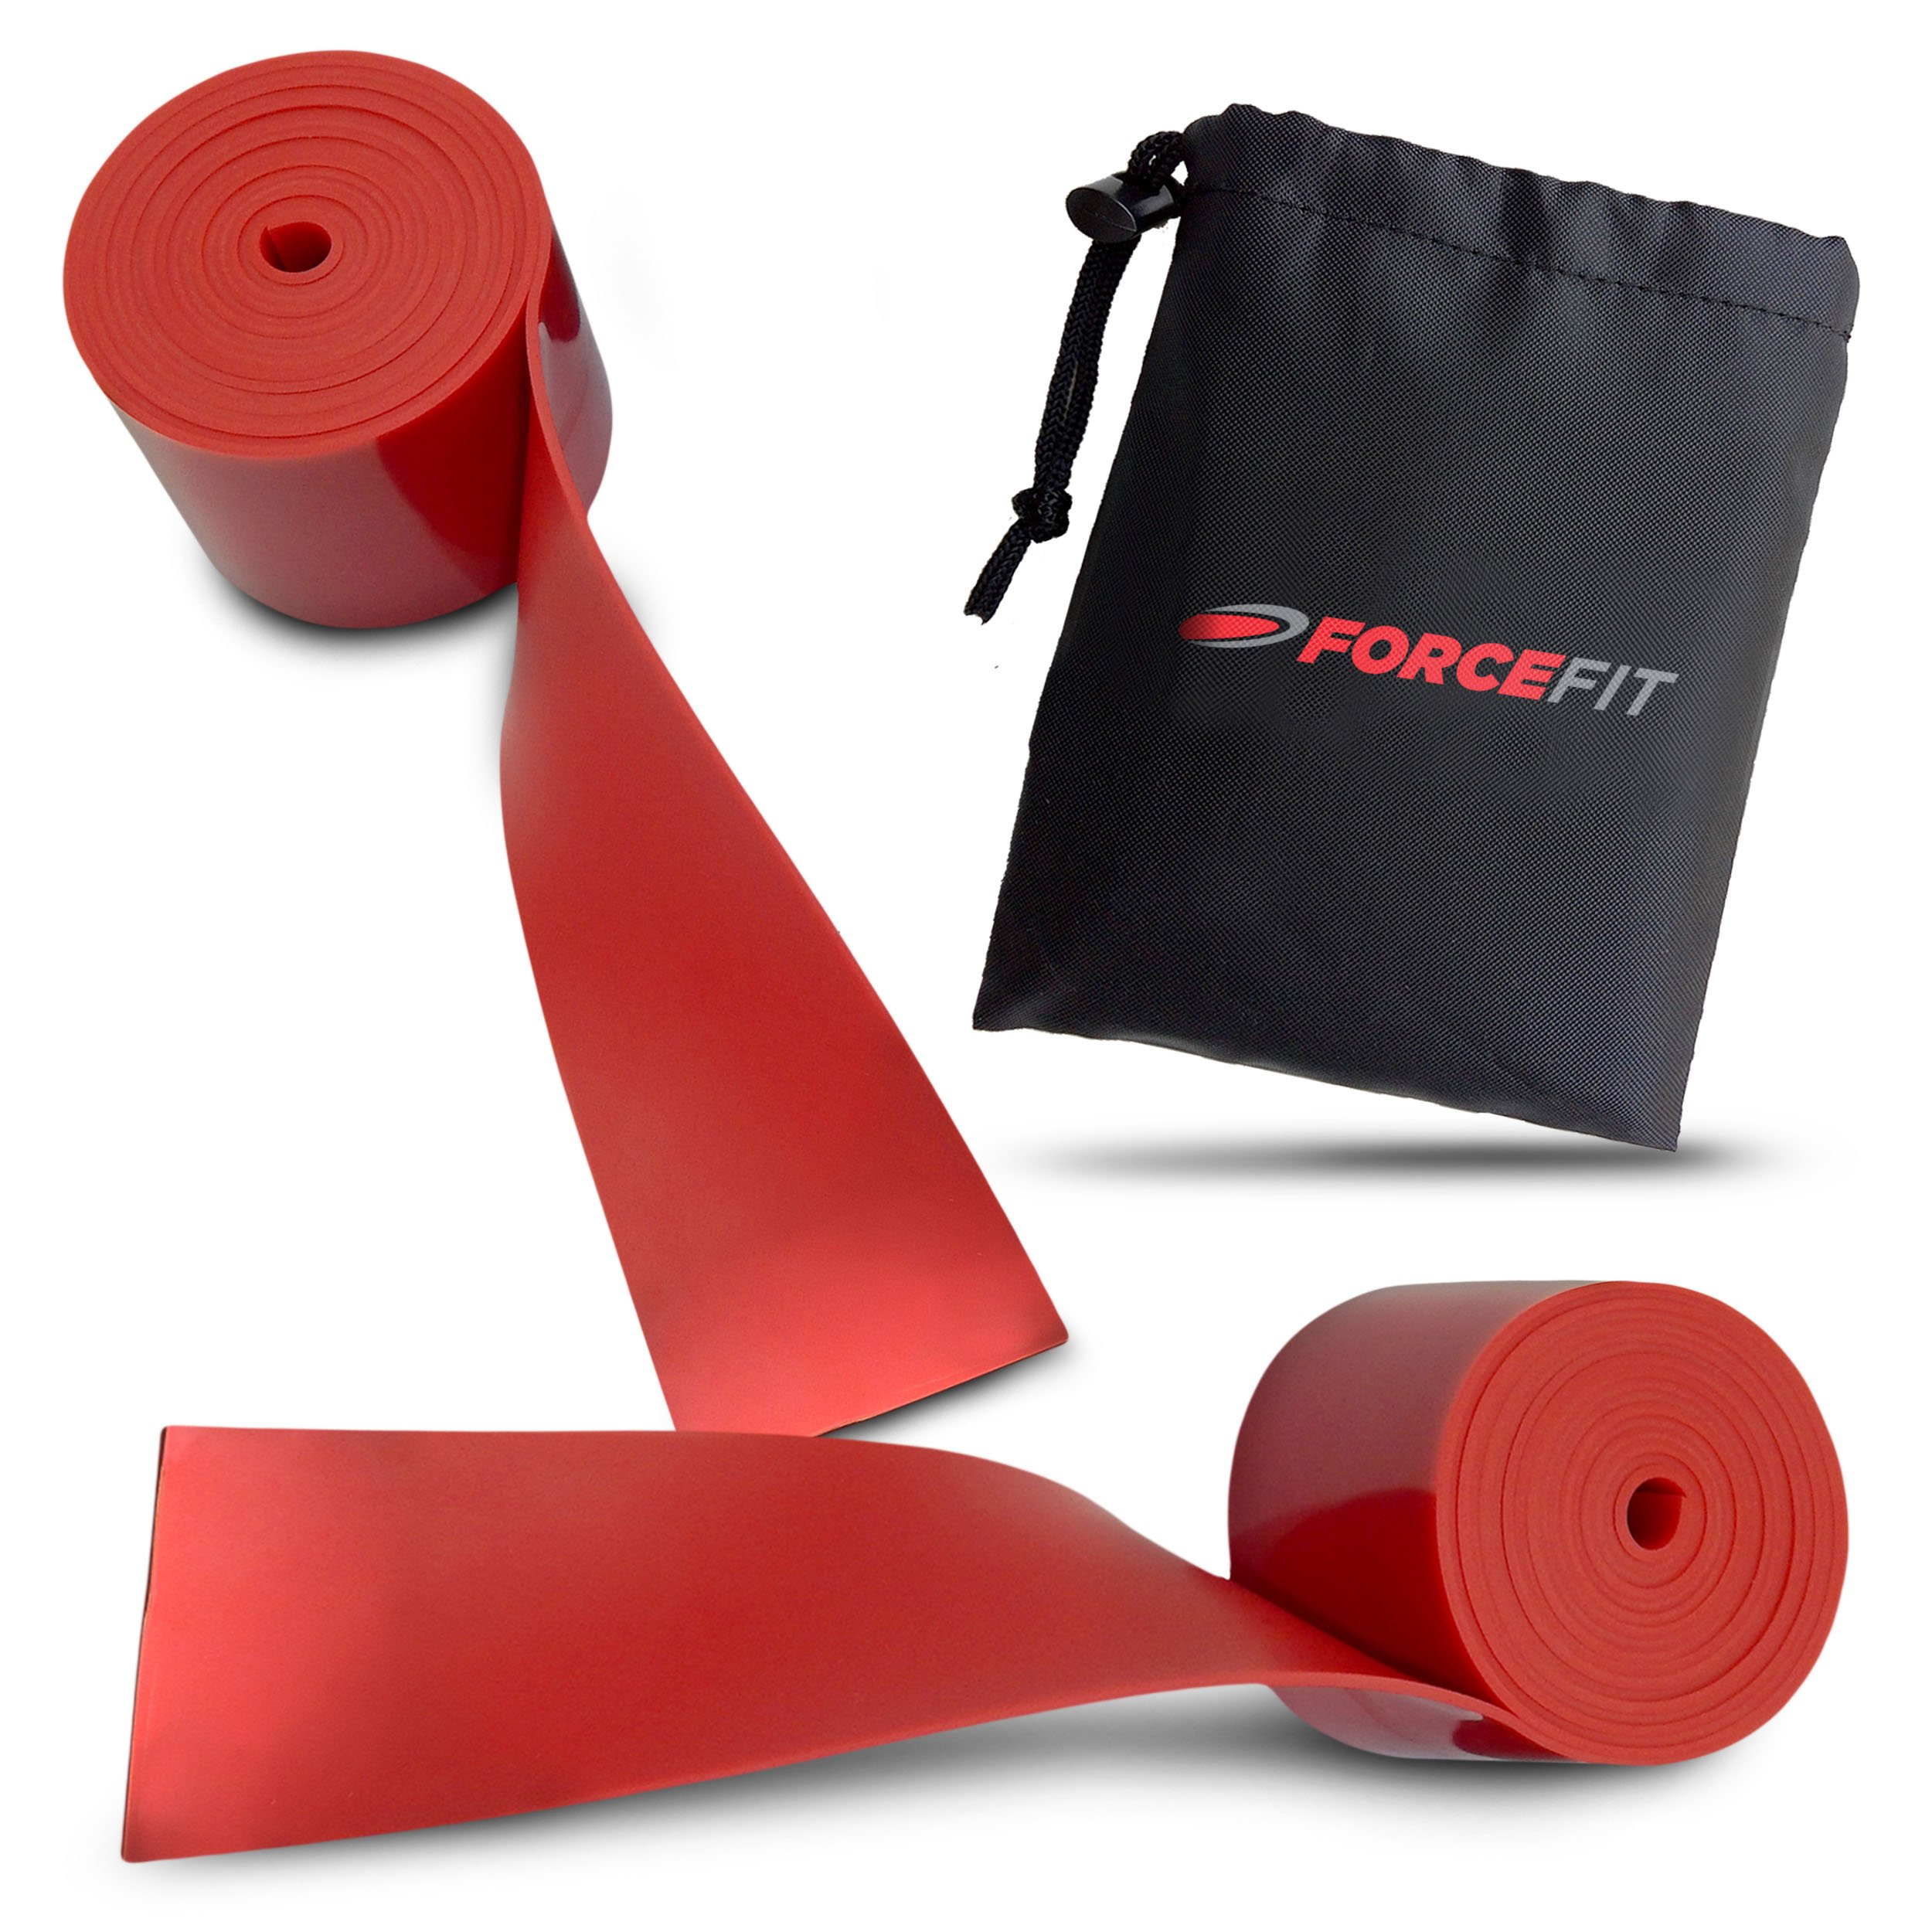 ForceFit Floss Bands for Joint and Muscle Recovery - 1 Red & 1 Red (2 Red Bands) by ForceFit